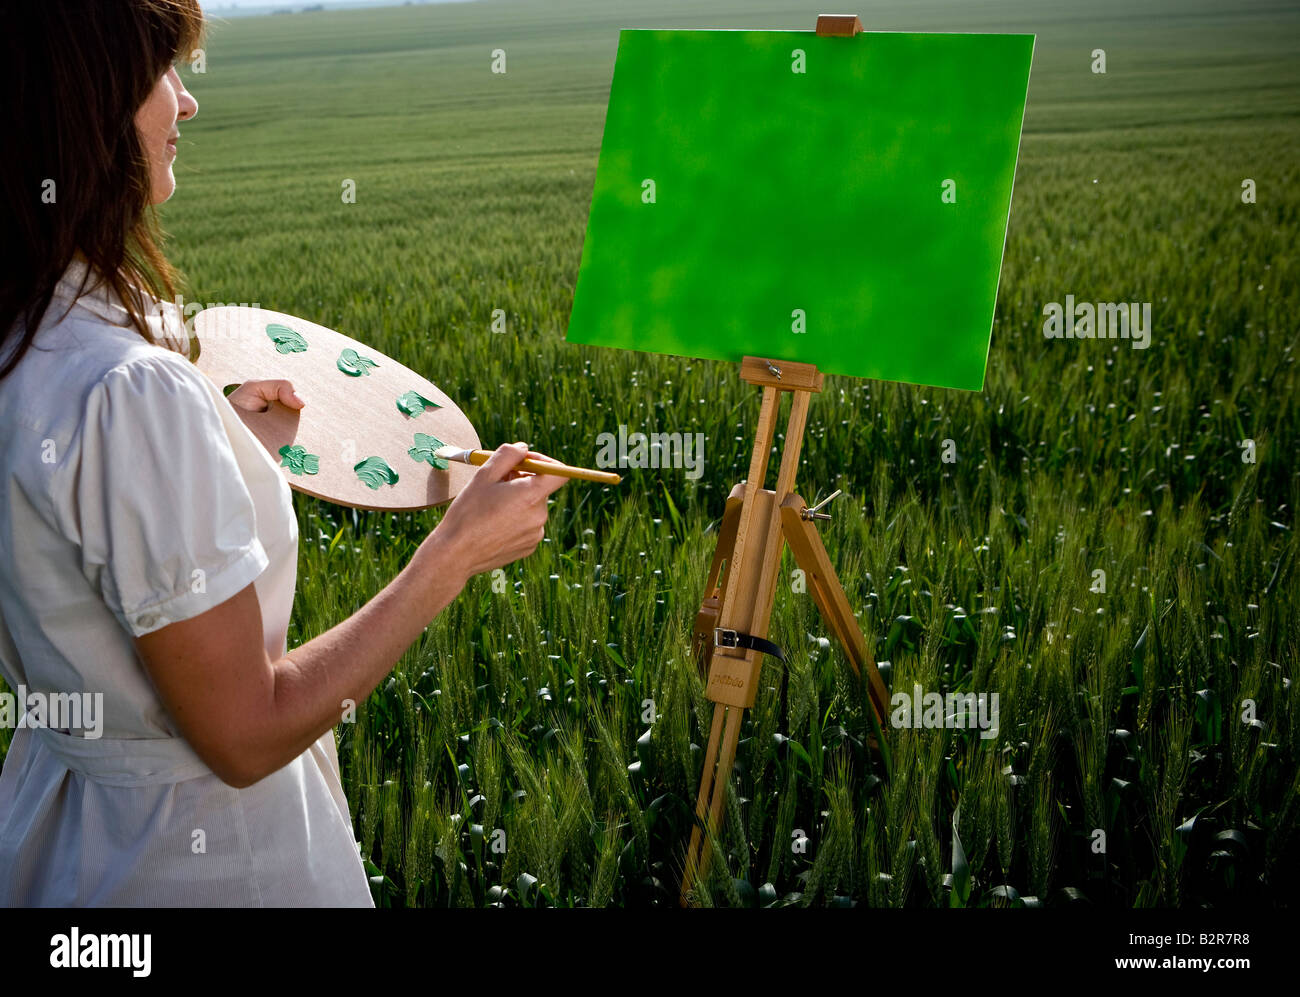 Woman painting in wheat-field - Stock Image